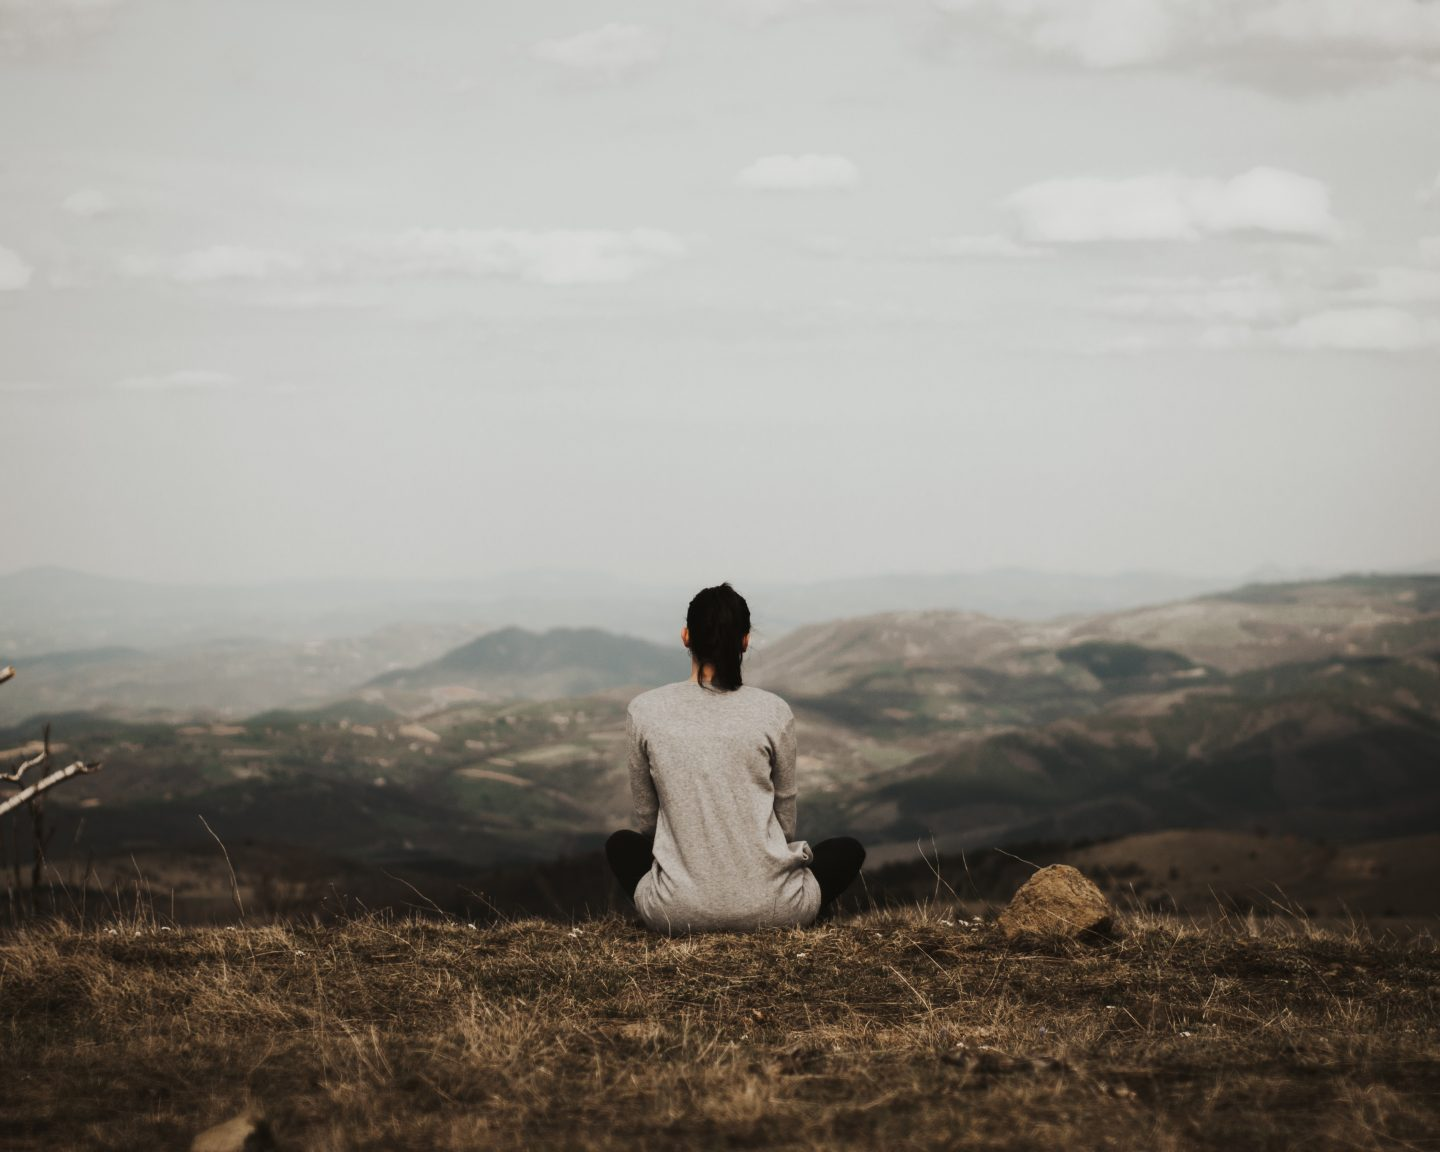 A girl sitting on the ground enjoying the view into the mountains while letting her mind wander.